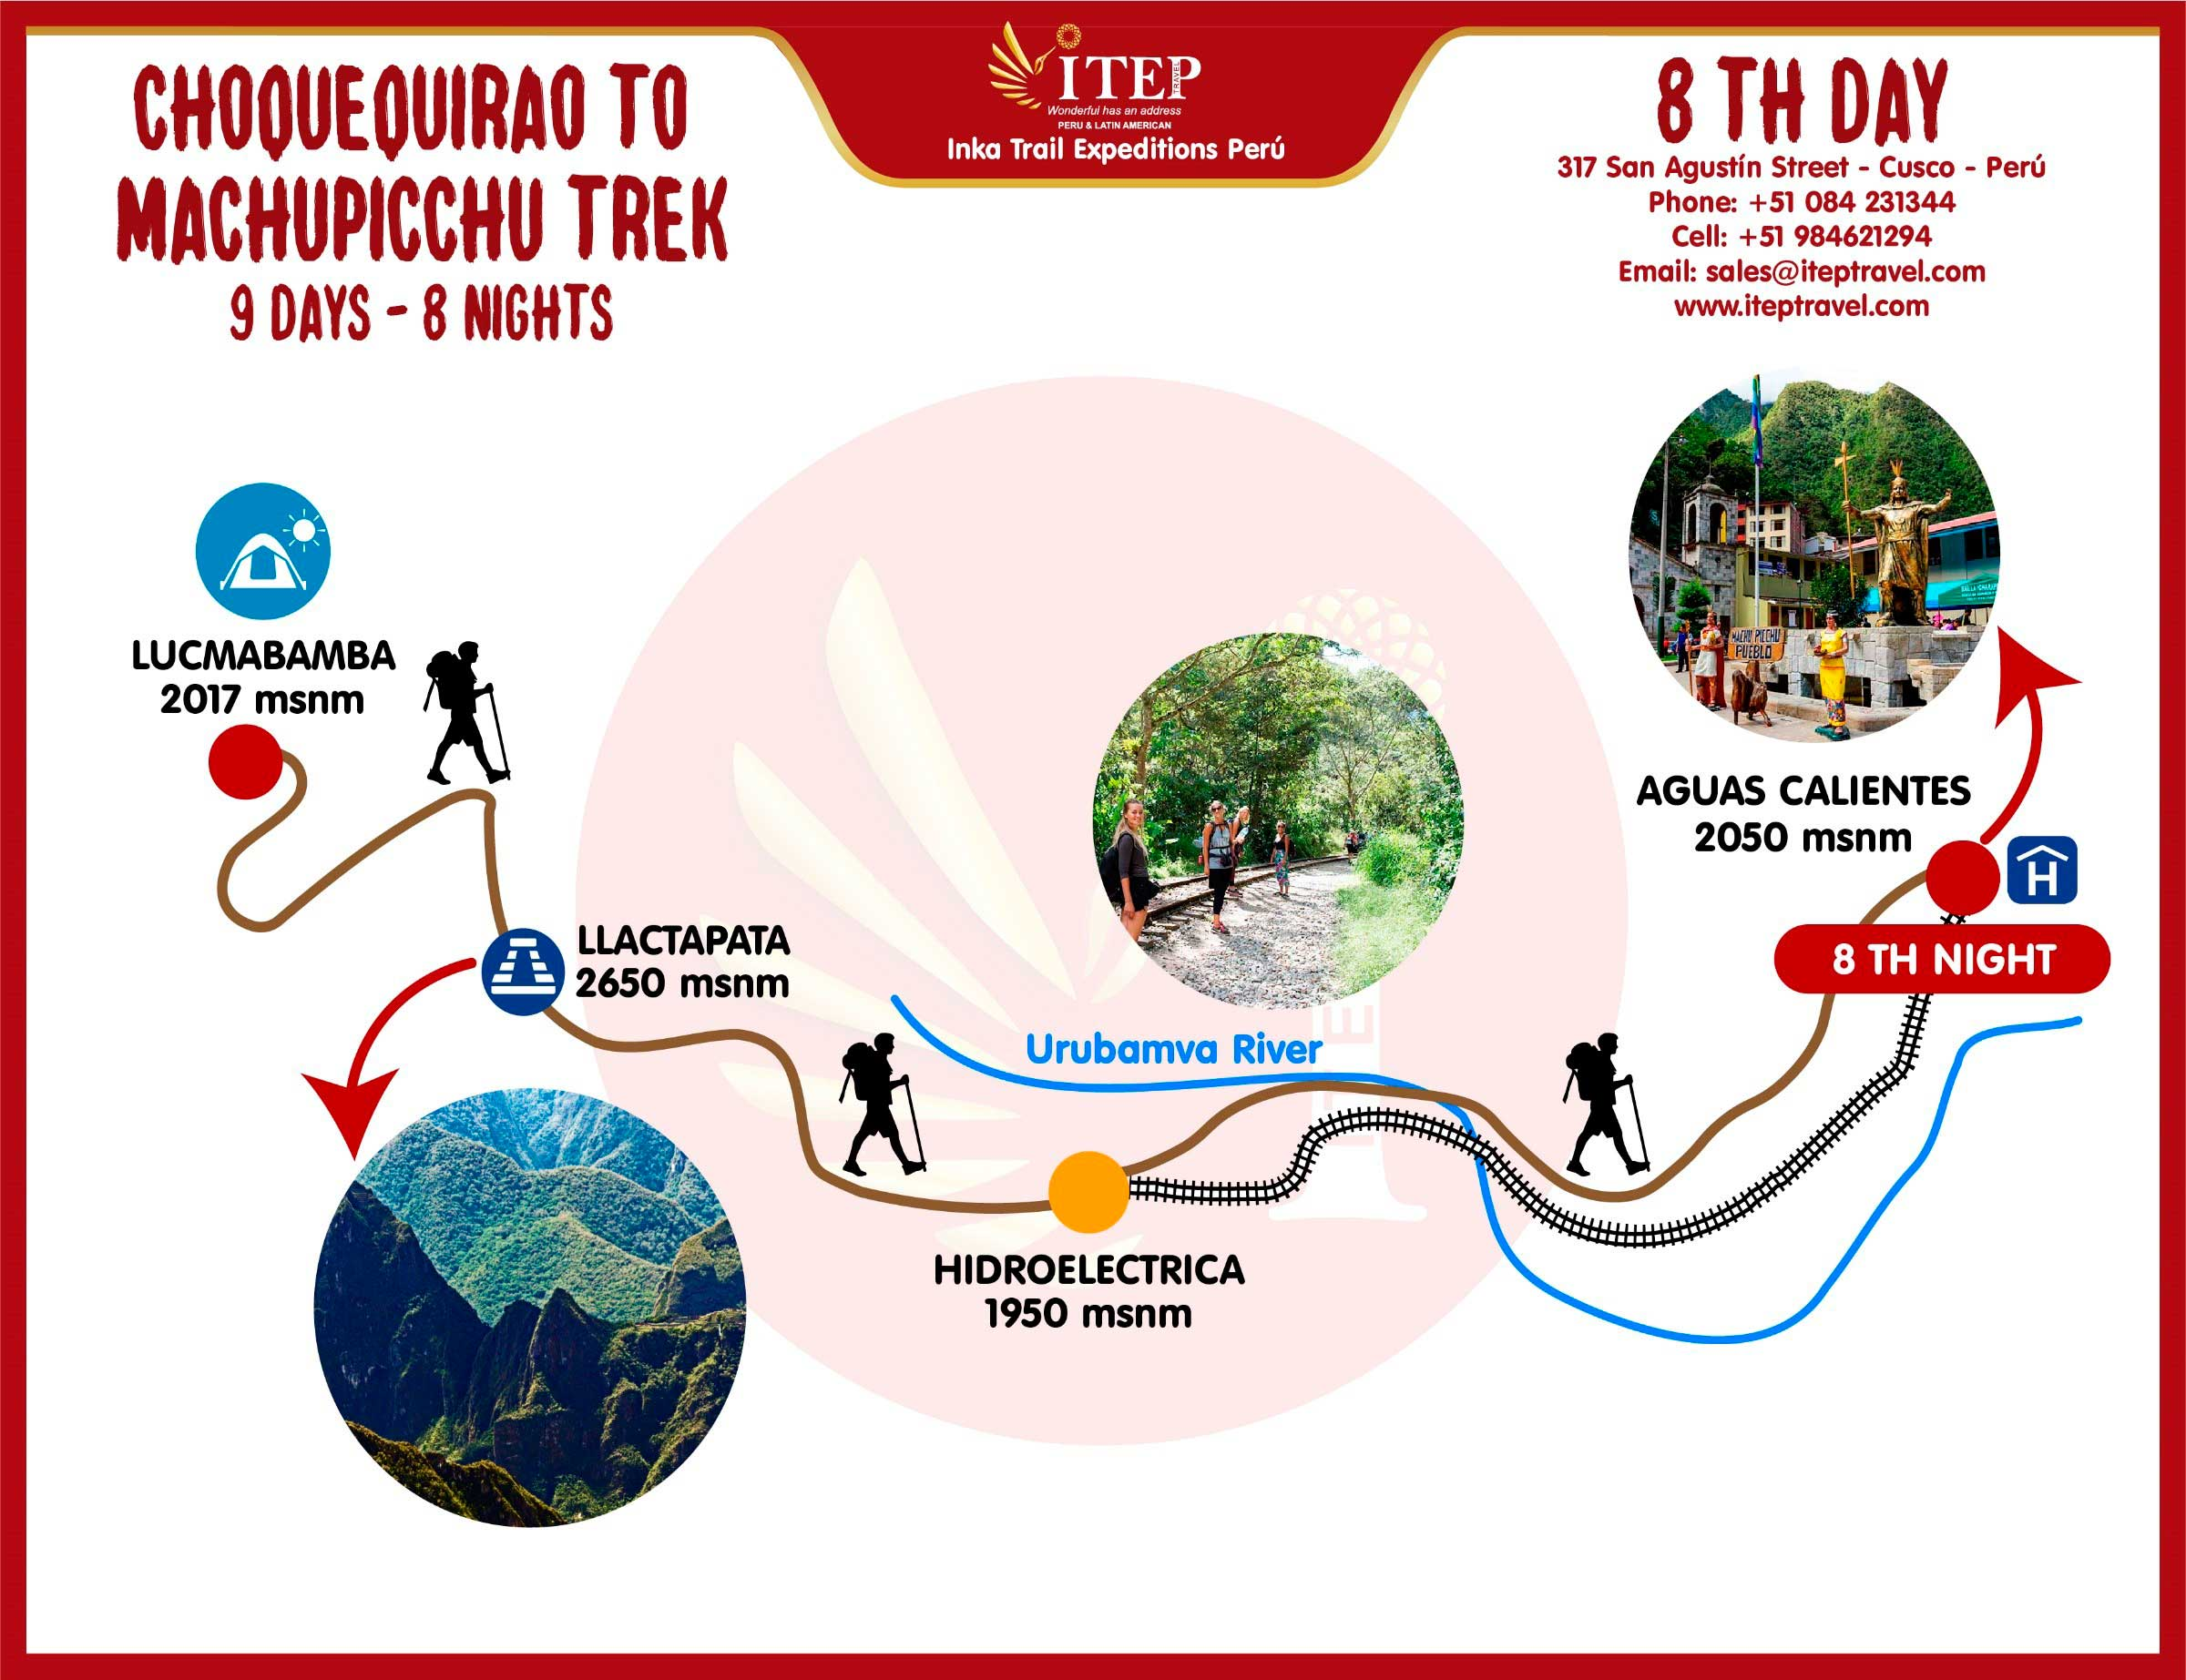 Map - Day 8: Lucmabamba | Llactapata – Hydroelectric – Aguas Calientes